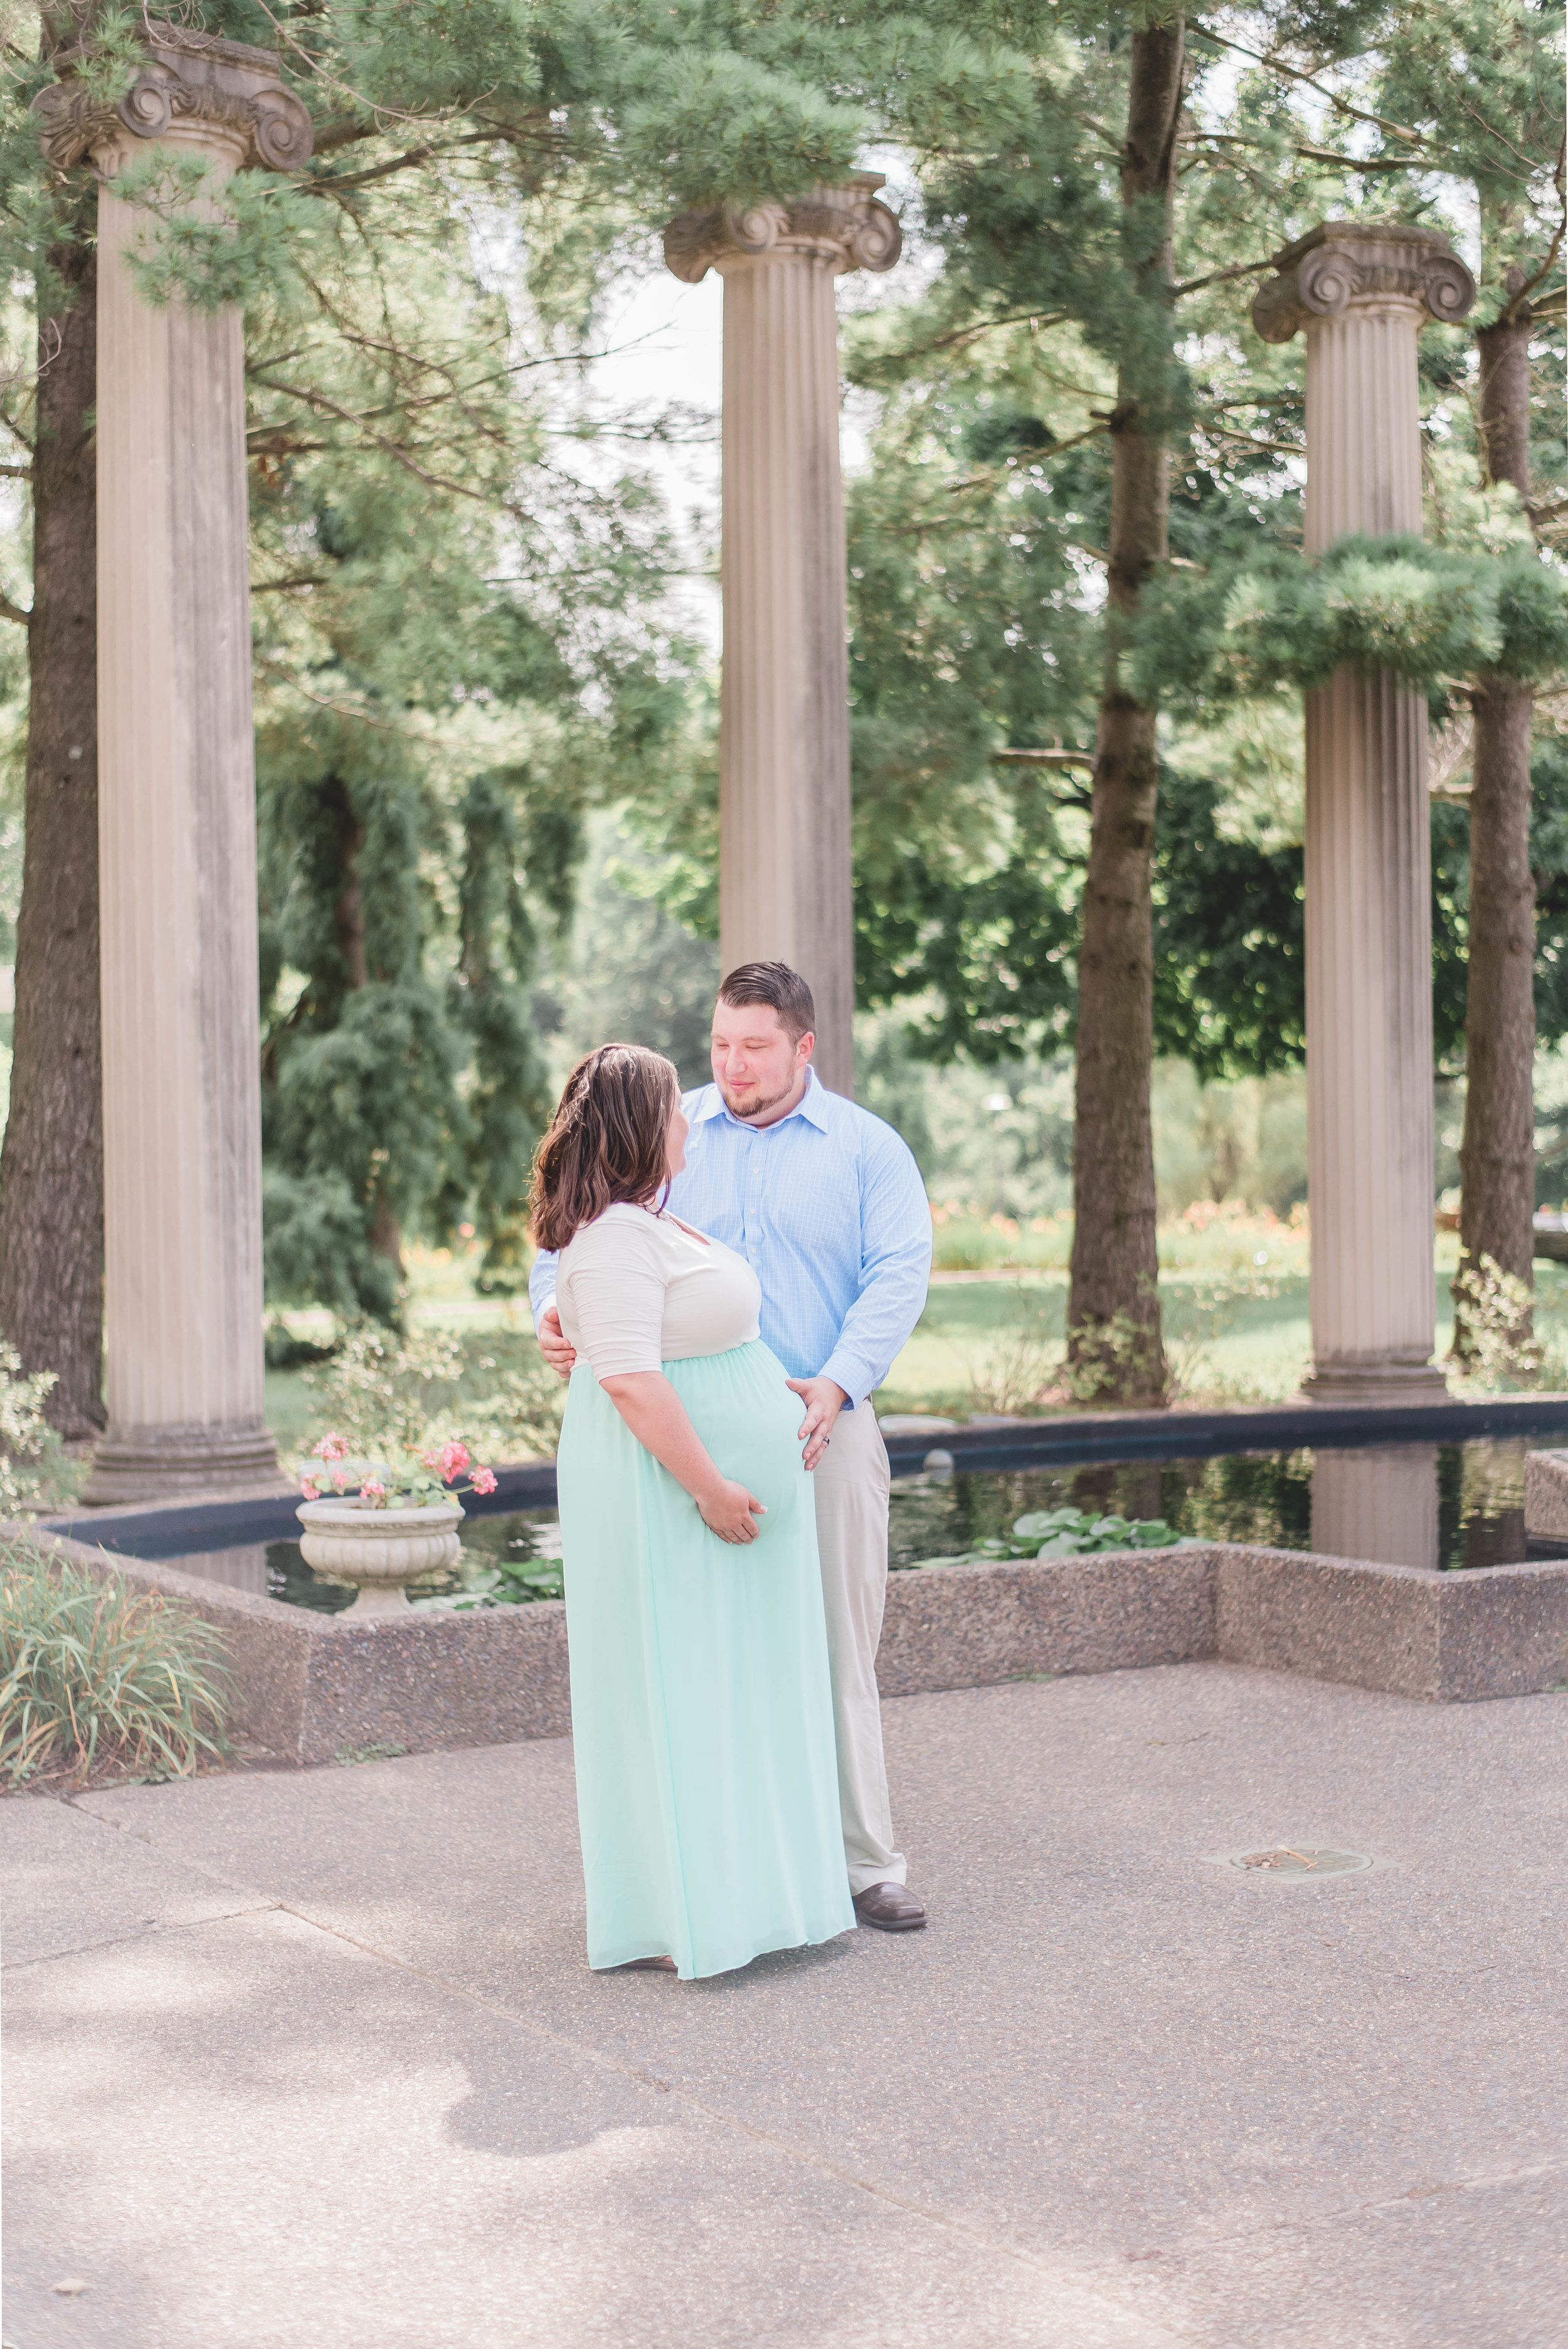 outdoor maternity session location